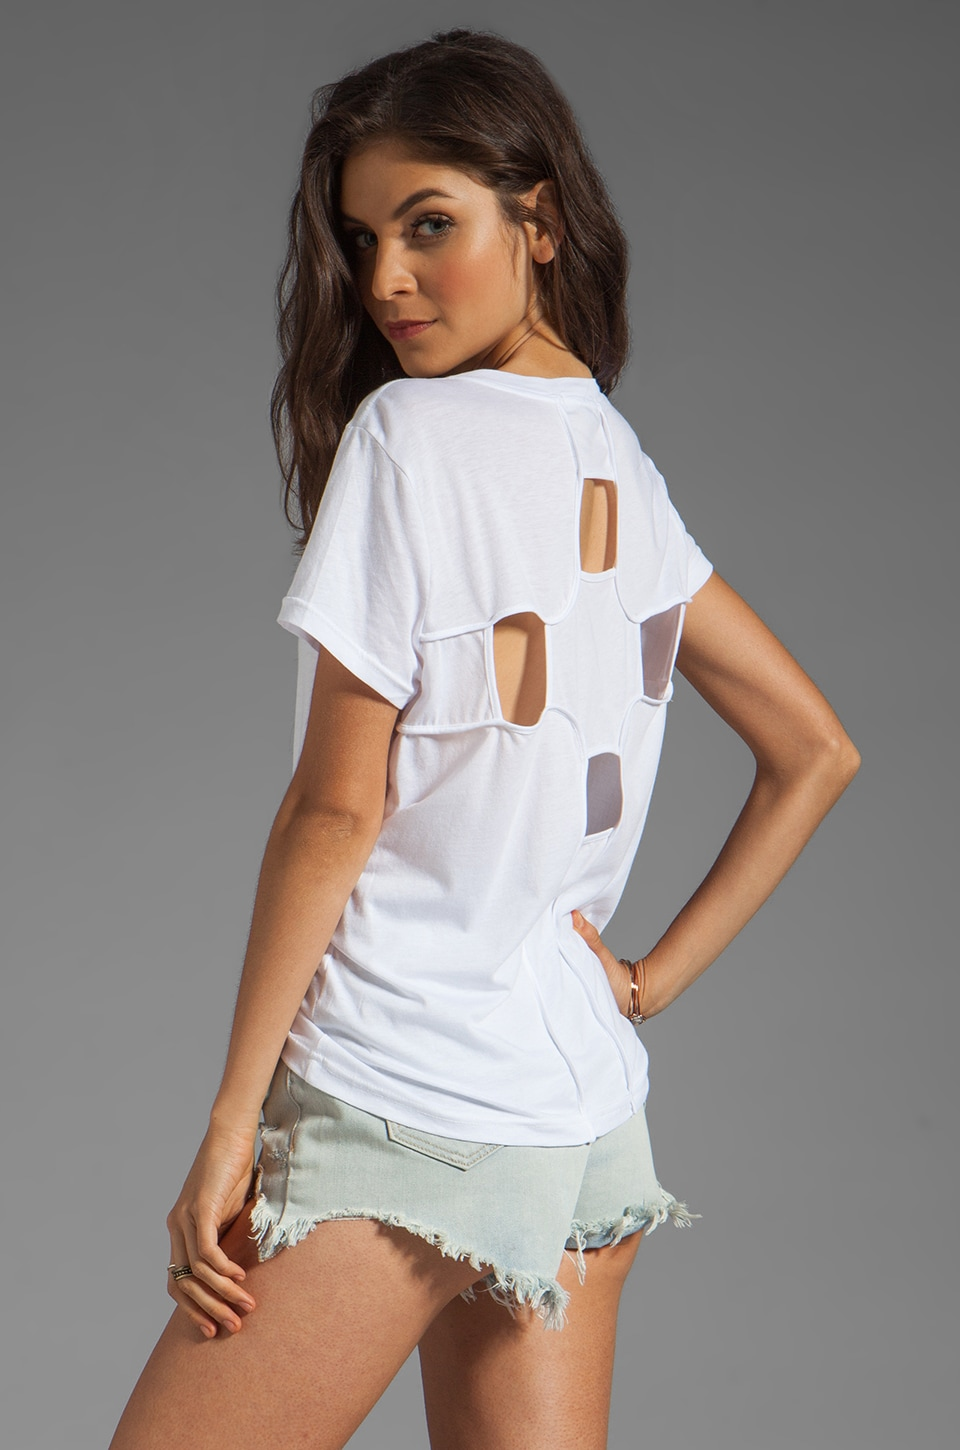 Funktional Geometric Cut Out Back Tee in White